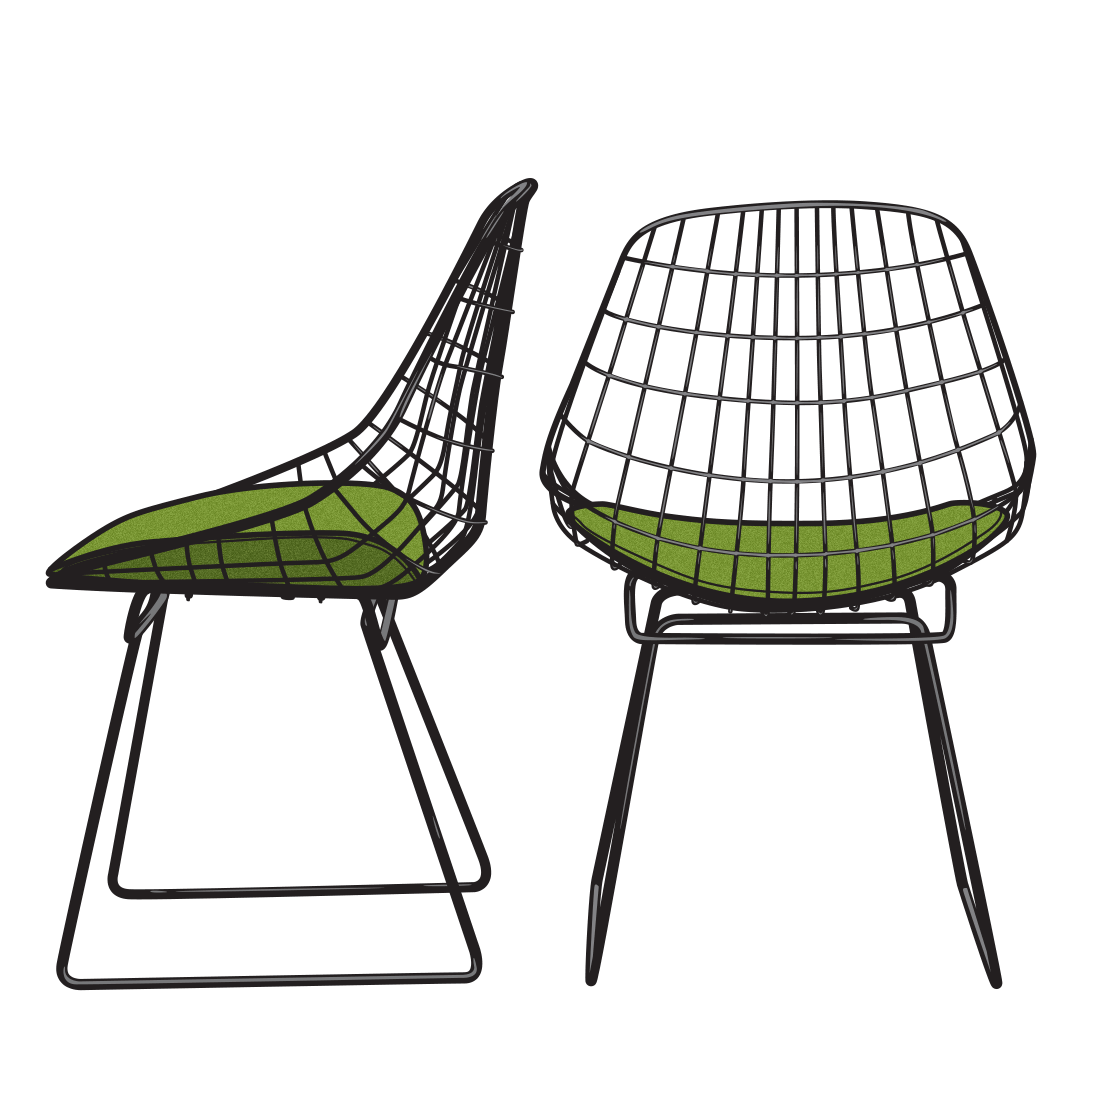 Furniture clipart furniture sale. Illustration drawings of classic